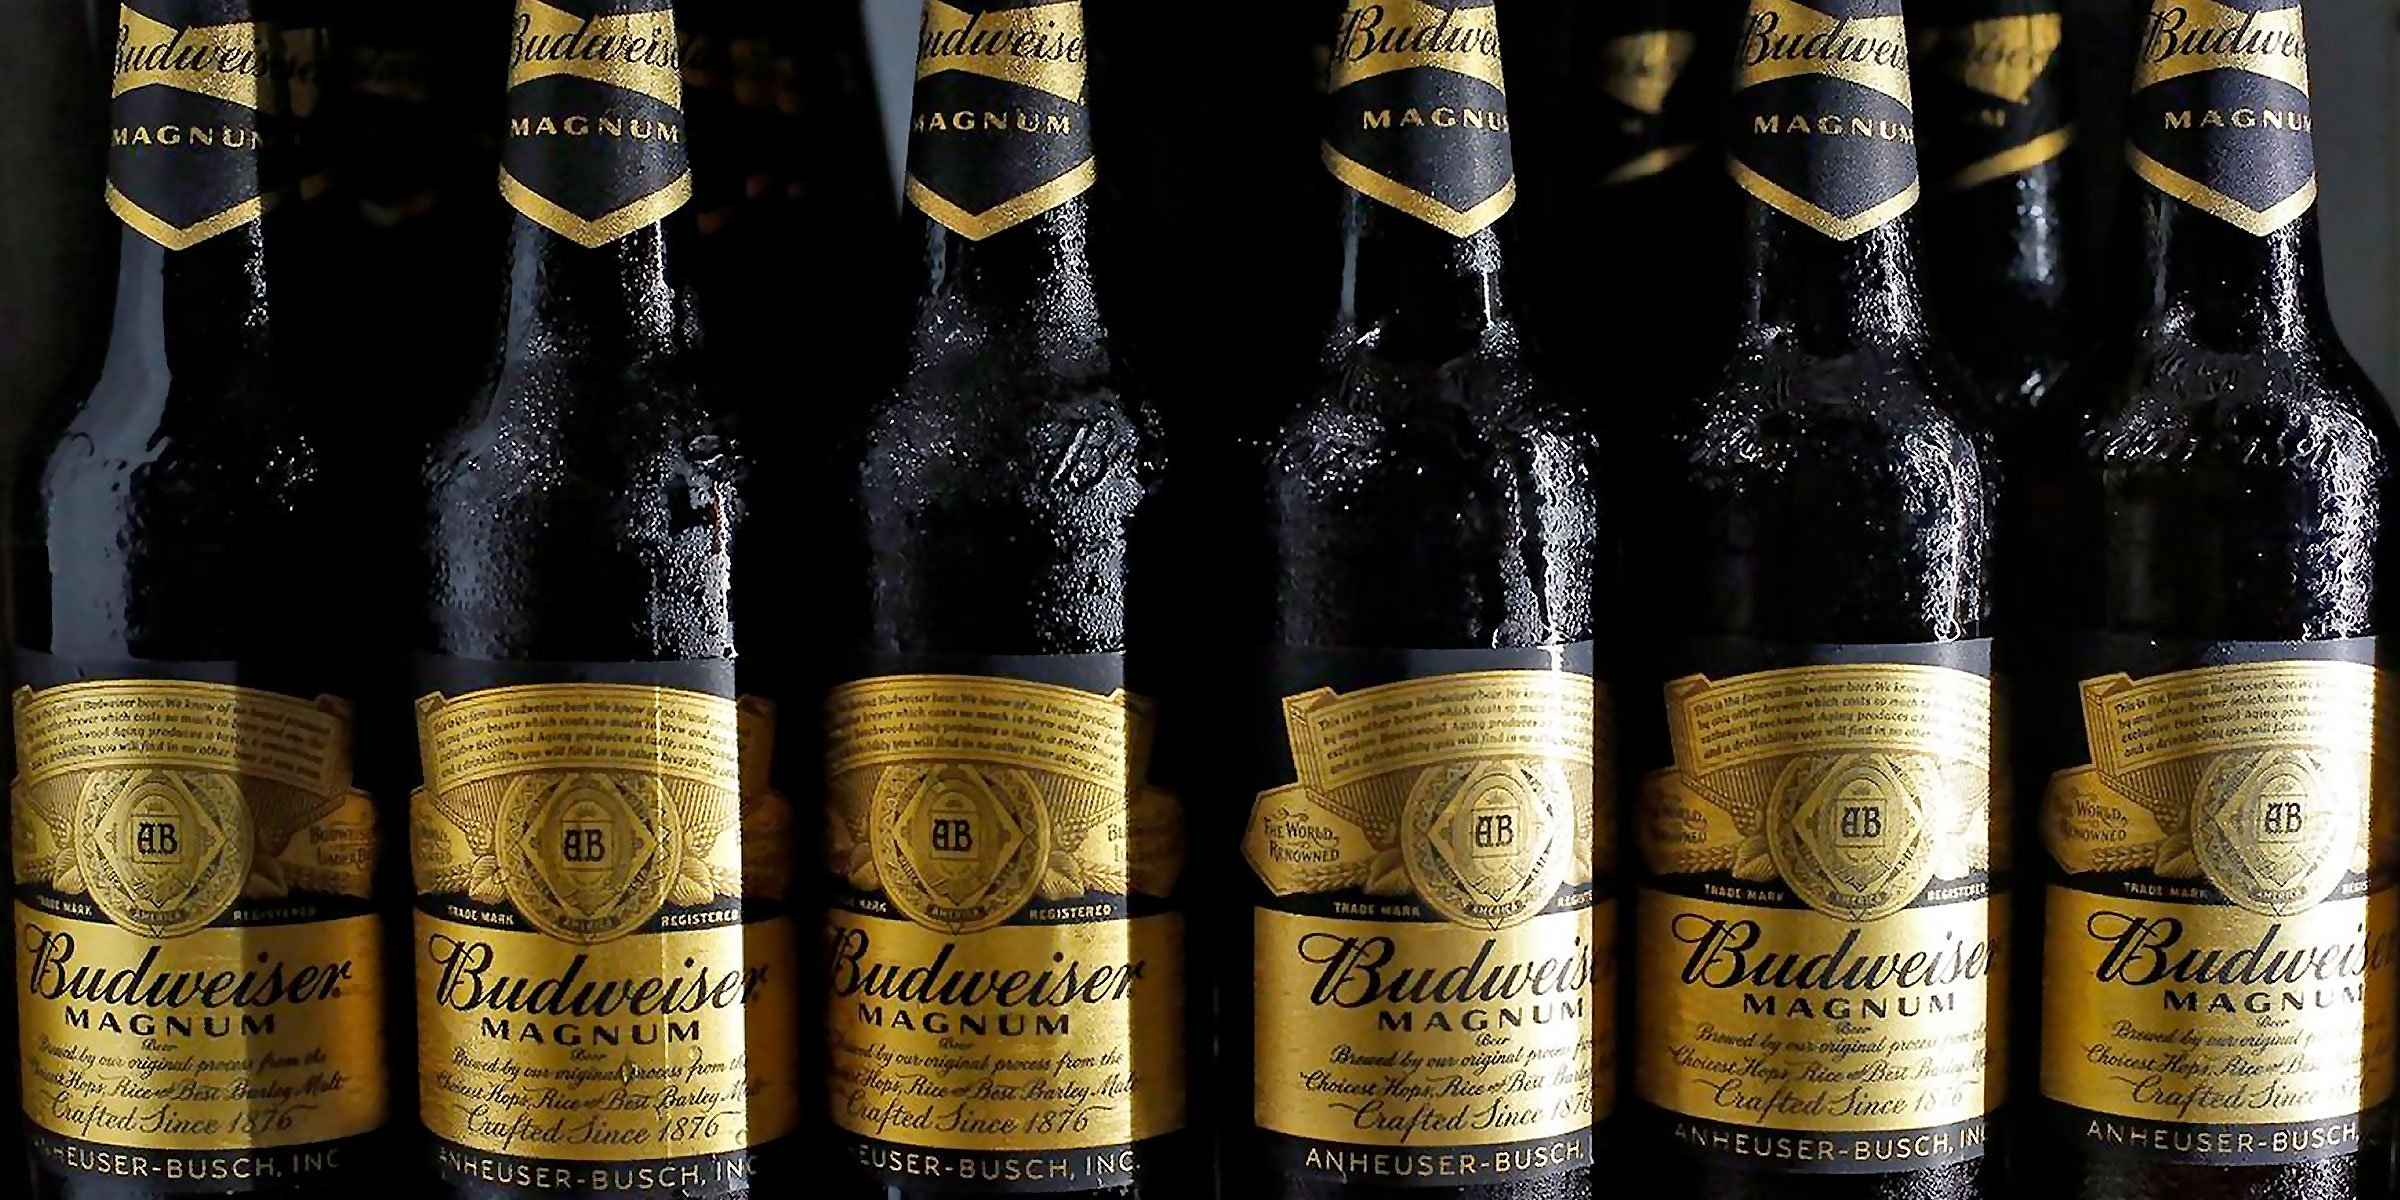 Bottles of Budweiser Magnum that are sold in India. An Indian court dismissed an appeal from Anheuser-Busch InBev against a New Delhi city sales ban, a blow to the world's largest brewer in one a key market.